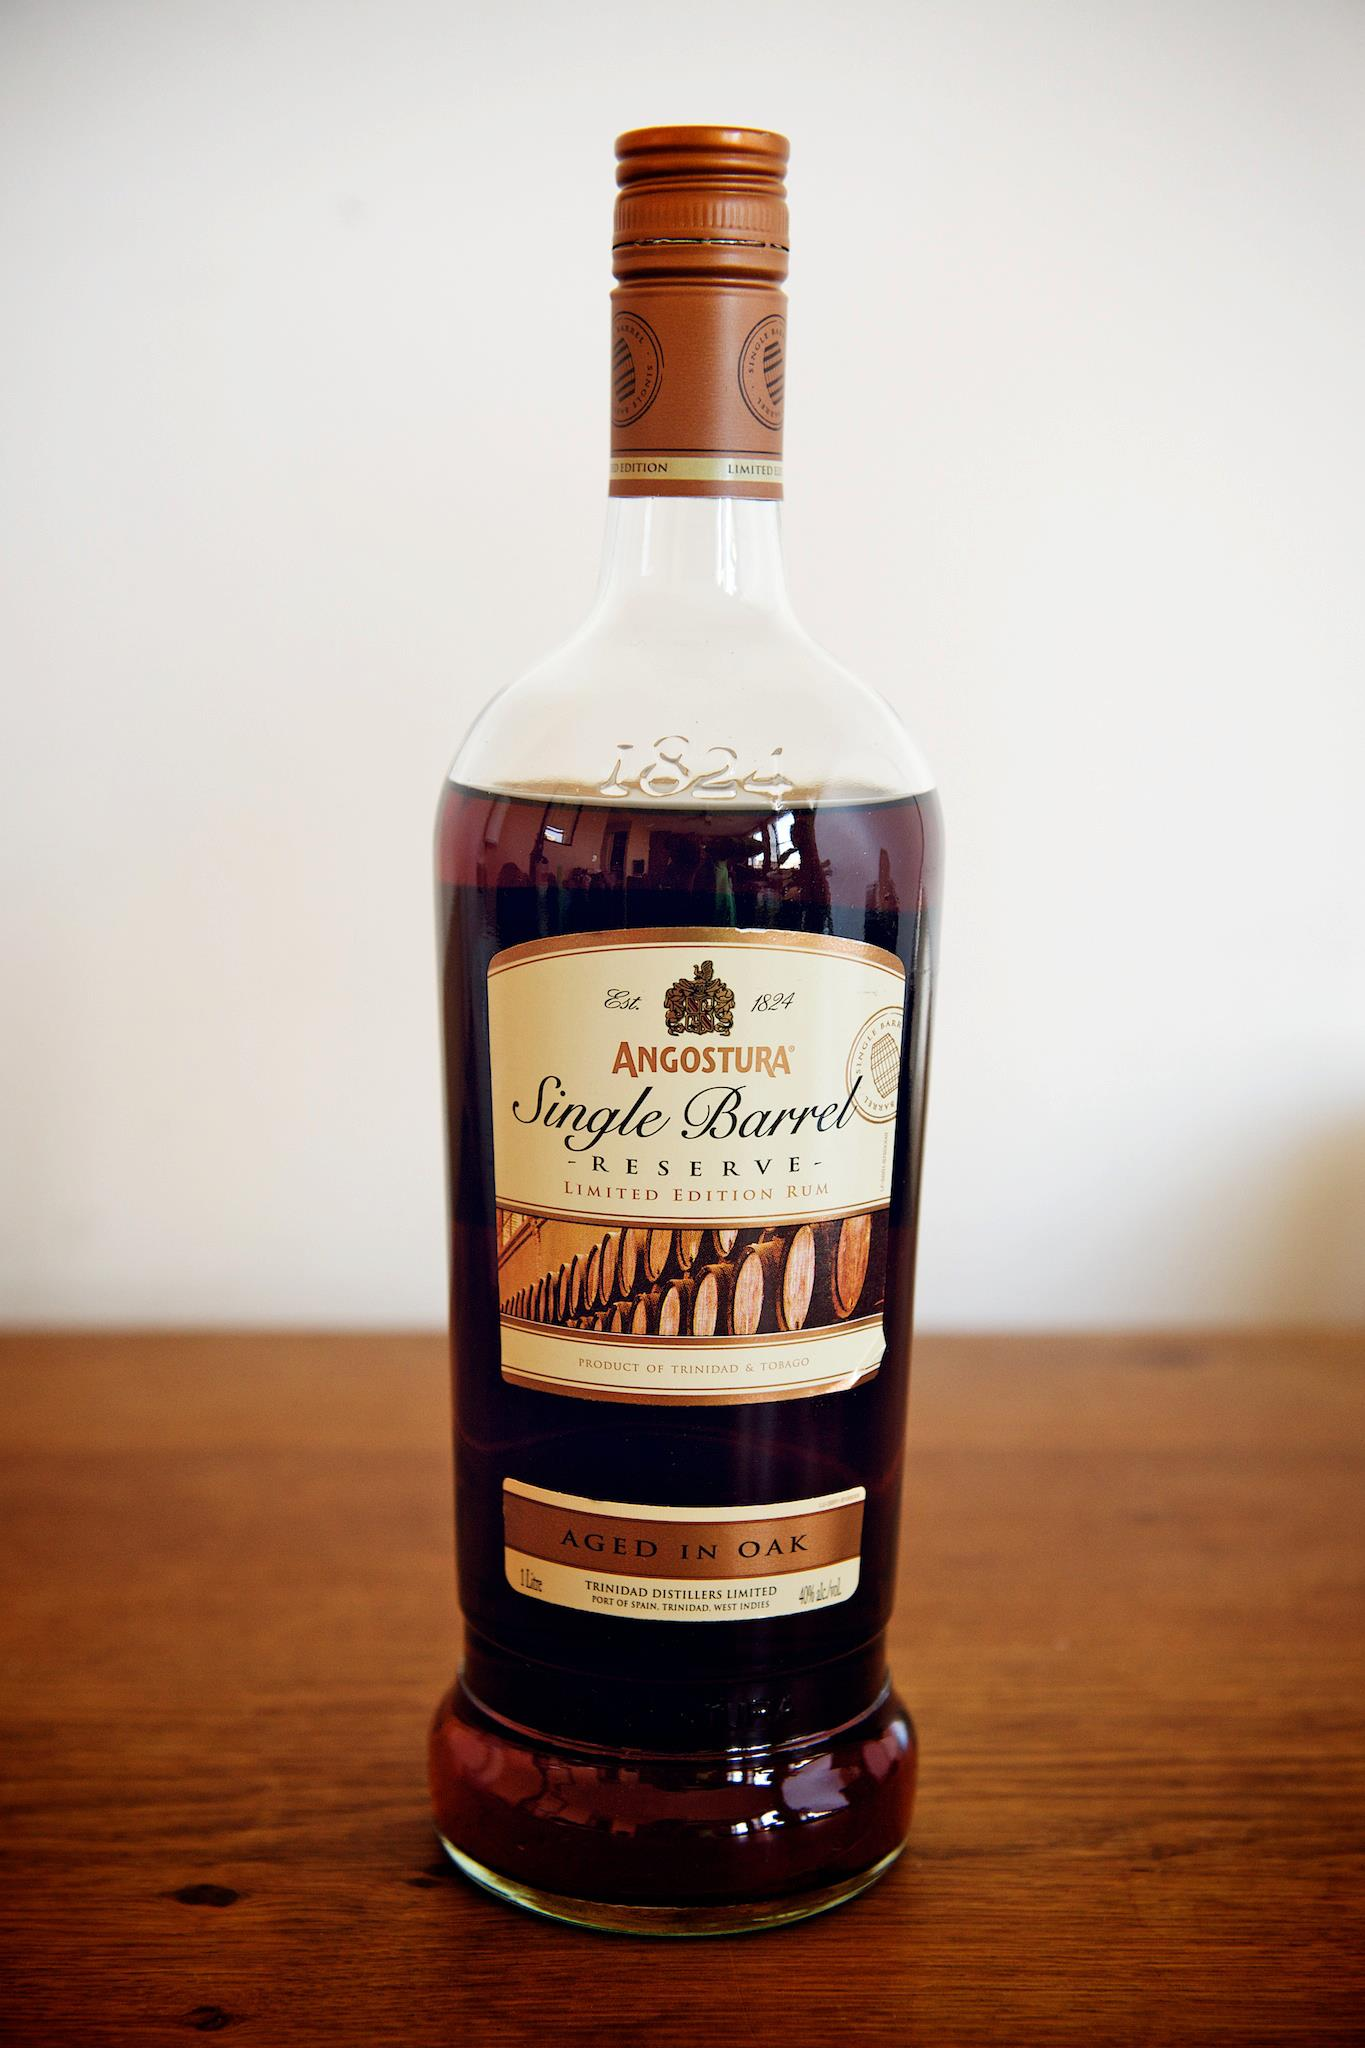 Angostura Single Barrel Reserve